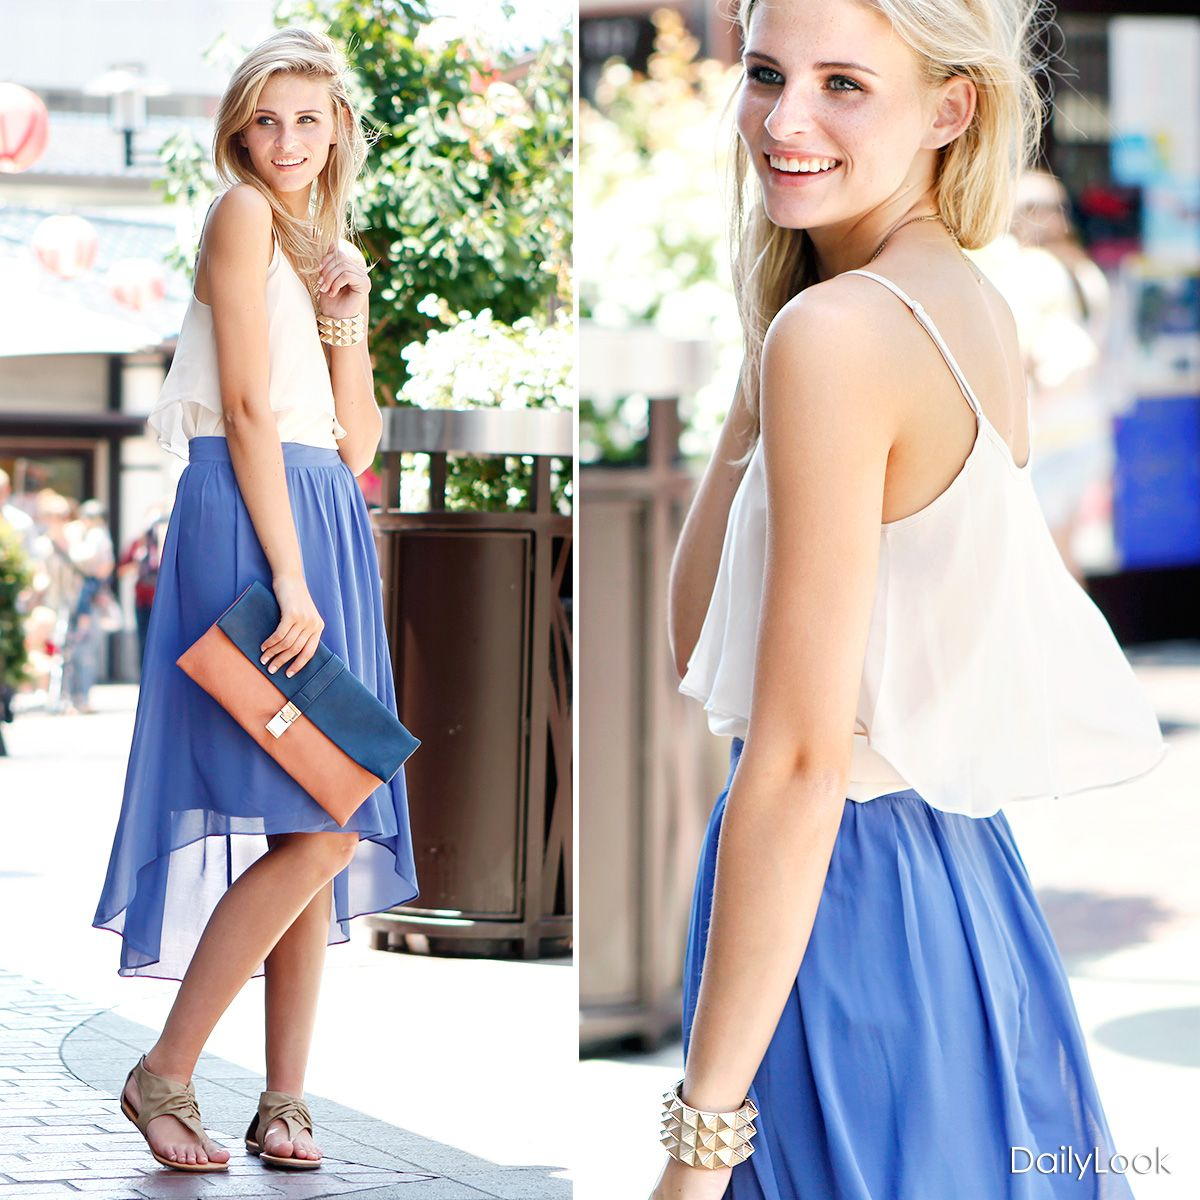 Check out Midsummer Night's Skirt by Alythea and TCEC at DailyLook